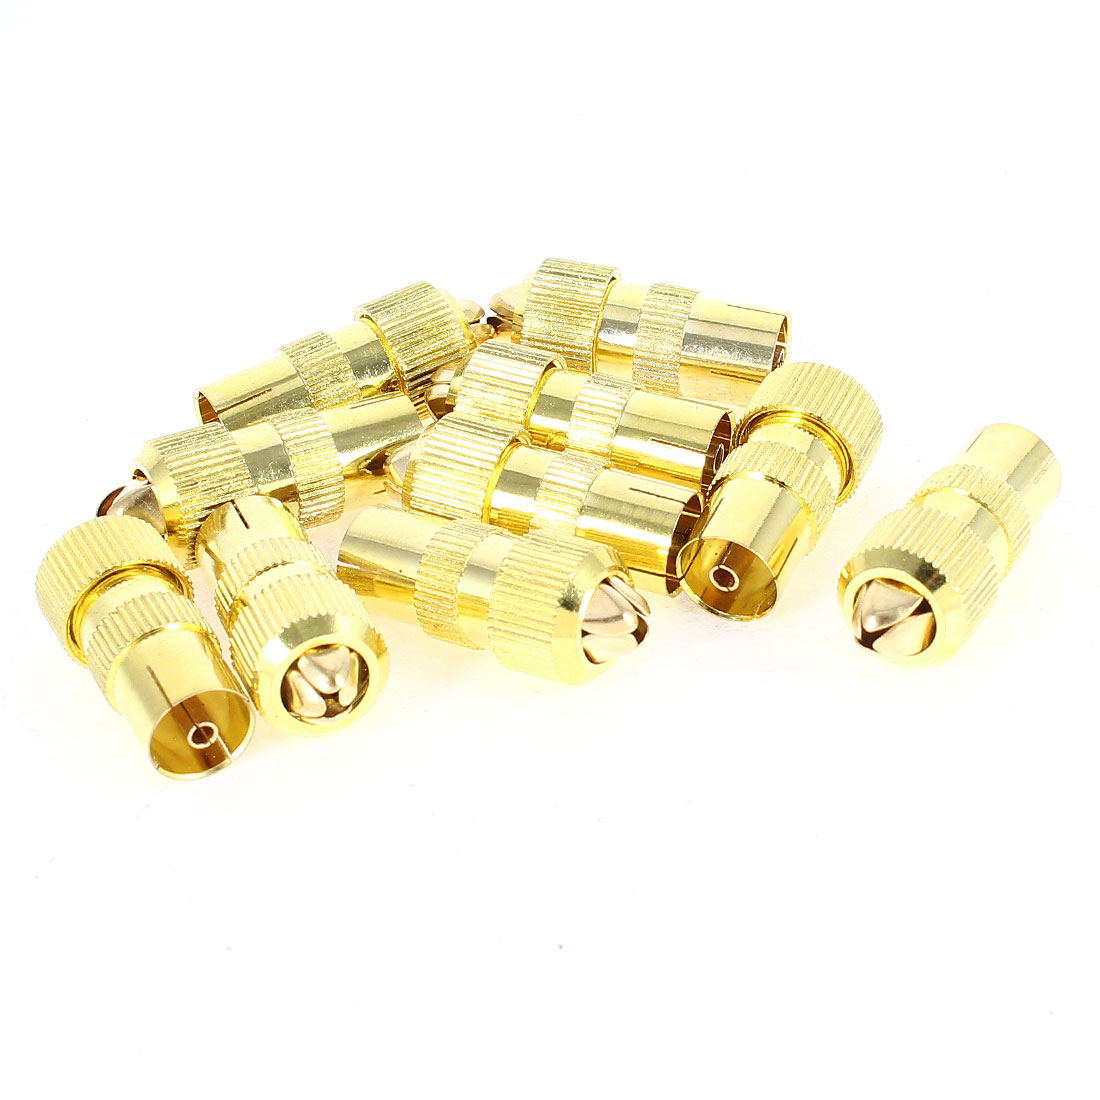 10 Pcs Gold Tone TV Antenna PAL FM Female Jack Straight Coaxial RF Adapter Connector